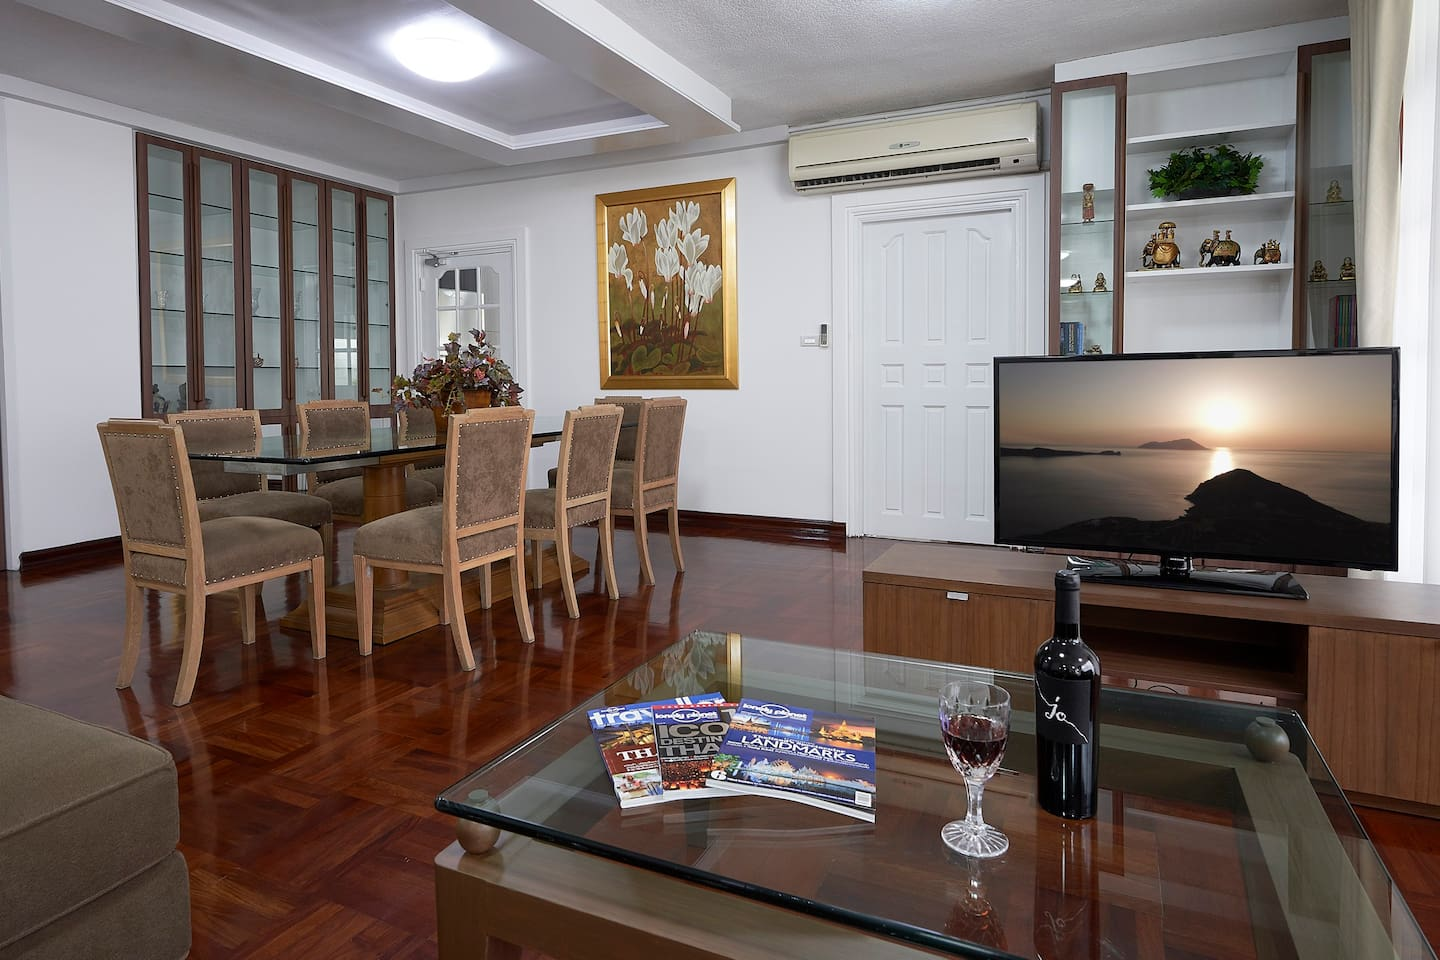 The main room of the apartment, with the kitchen being the door at the far left, and the main bedroom (with En-Suite) being the right hand door.